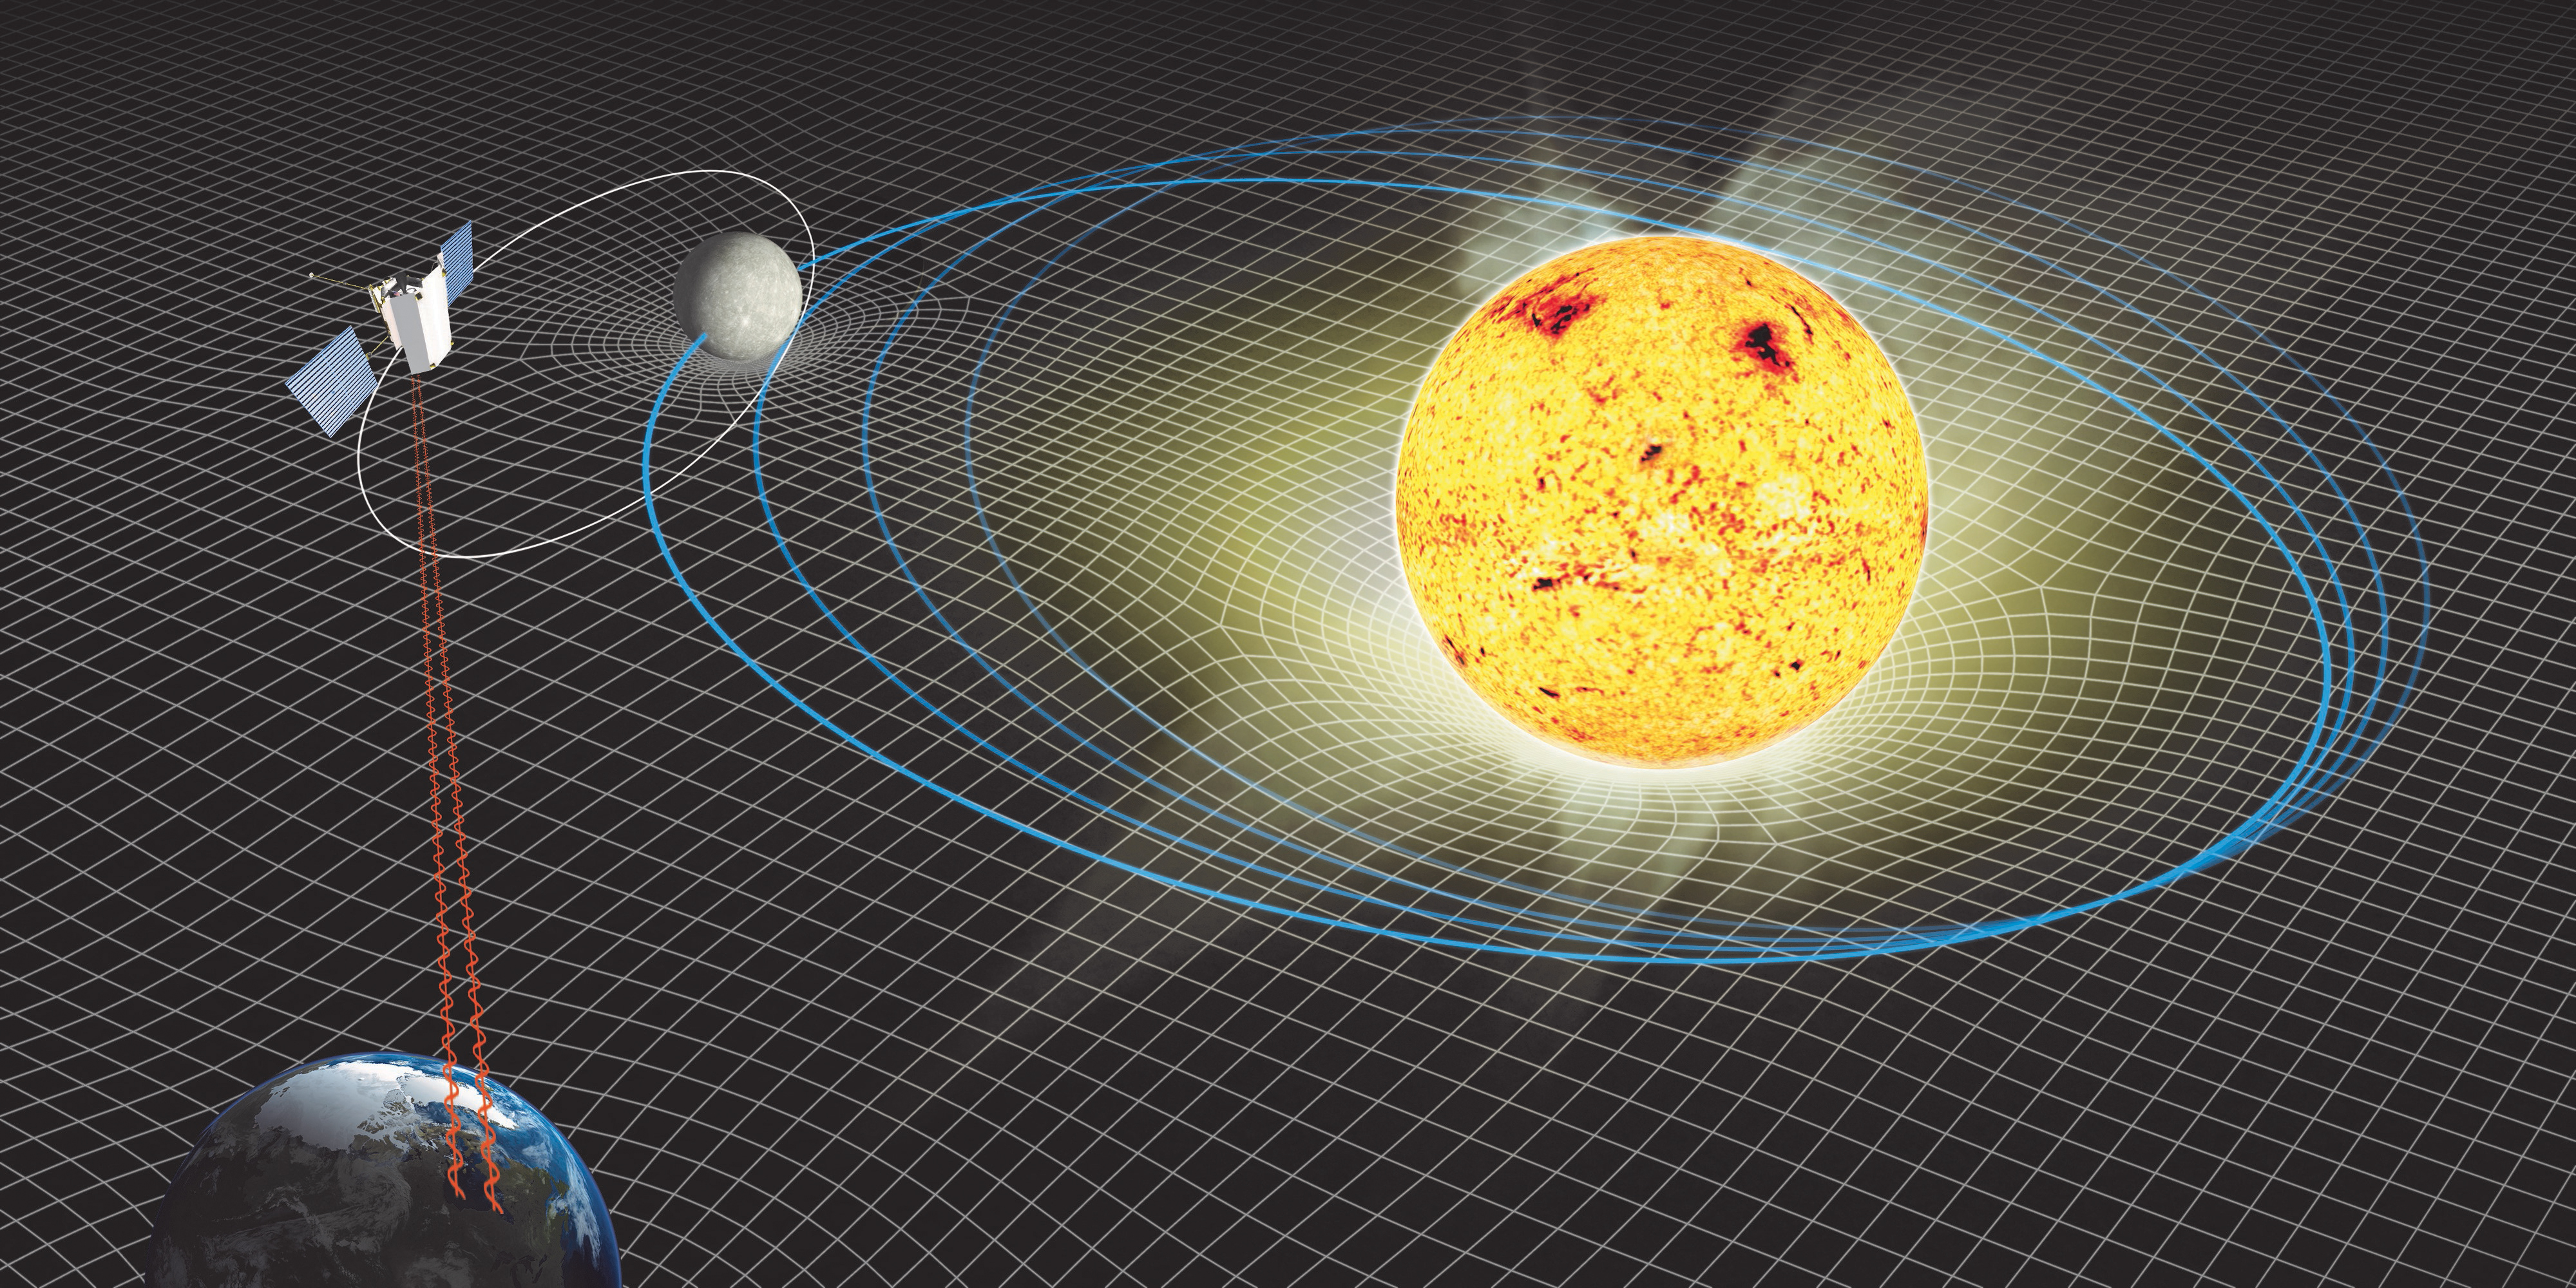 Changes in Mercury's orbit reveal an ageing Sun